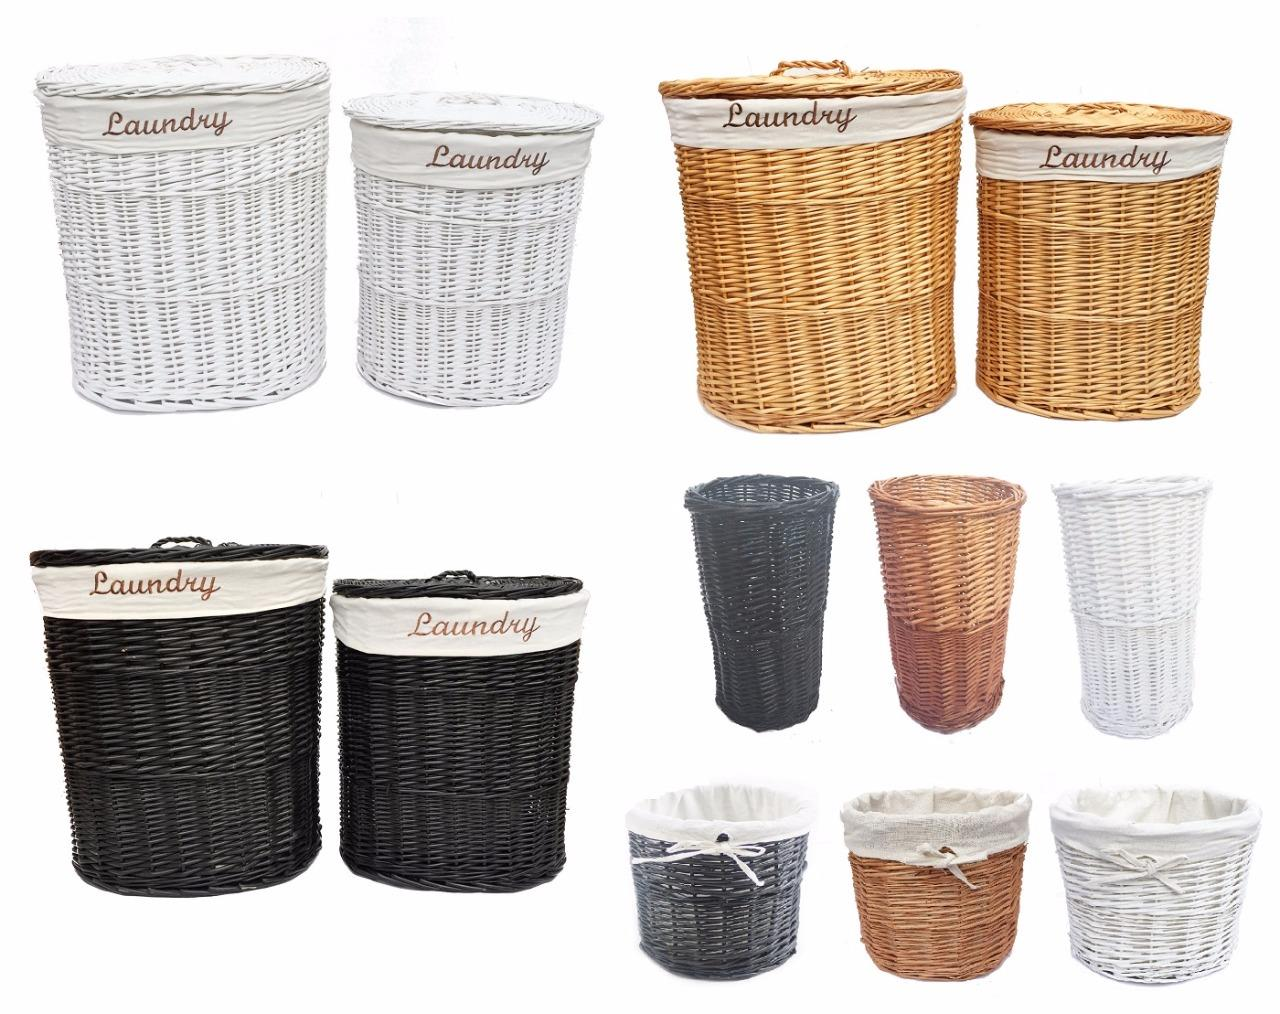 Dark Brown Wicker Laundry Basket Brown White Black Oval Wicker Laundry Basket With Lid